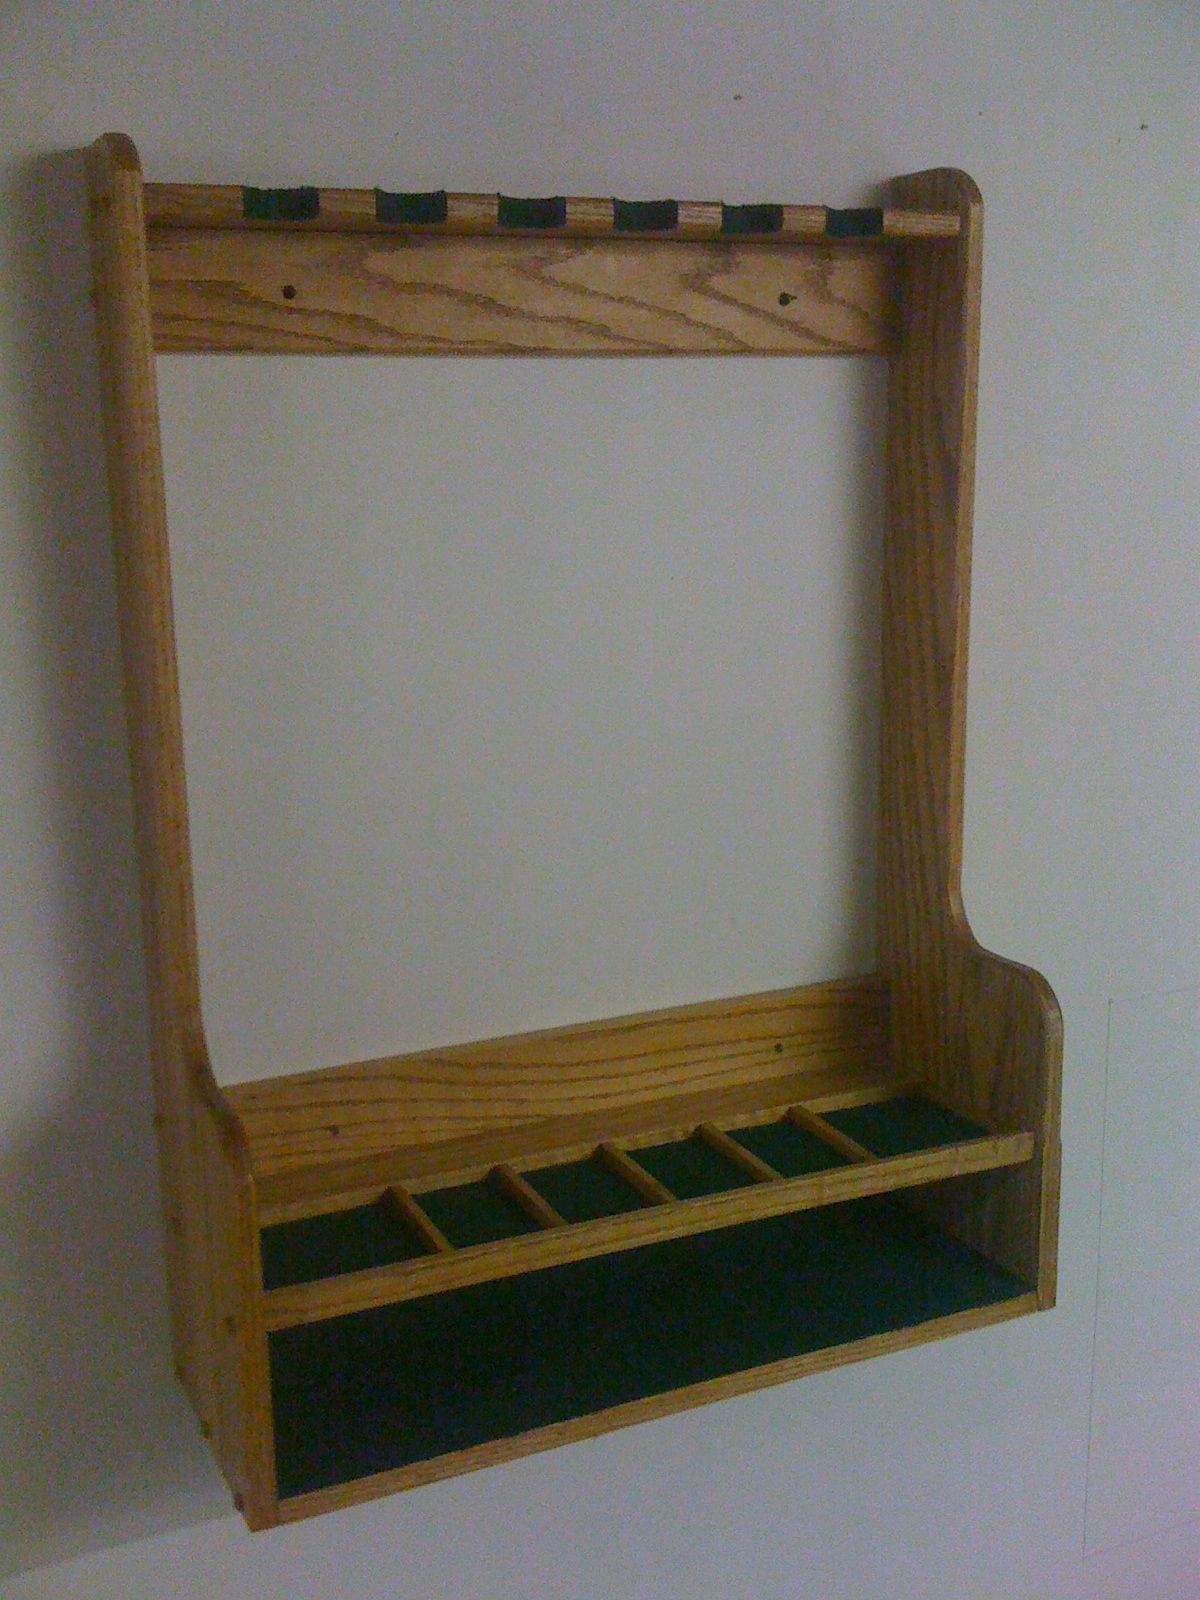 Vertical Gun Rack. Holds 6 Long Guns. CRAFT/SEWING Pinterest. Full resolution‎  pic, nominally Width 1600 Height 1200 pixels, pic with #61492C.